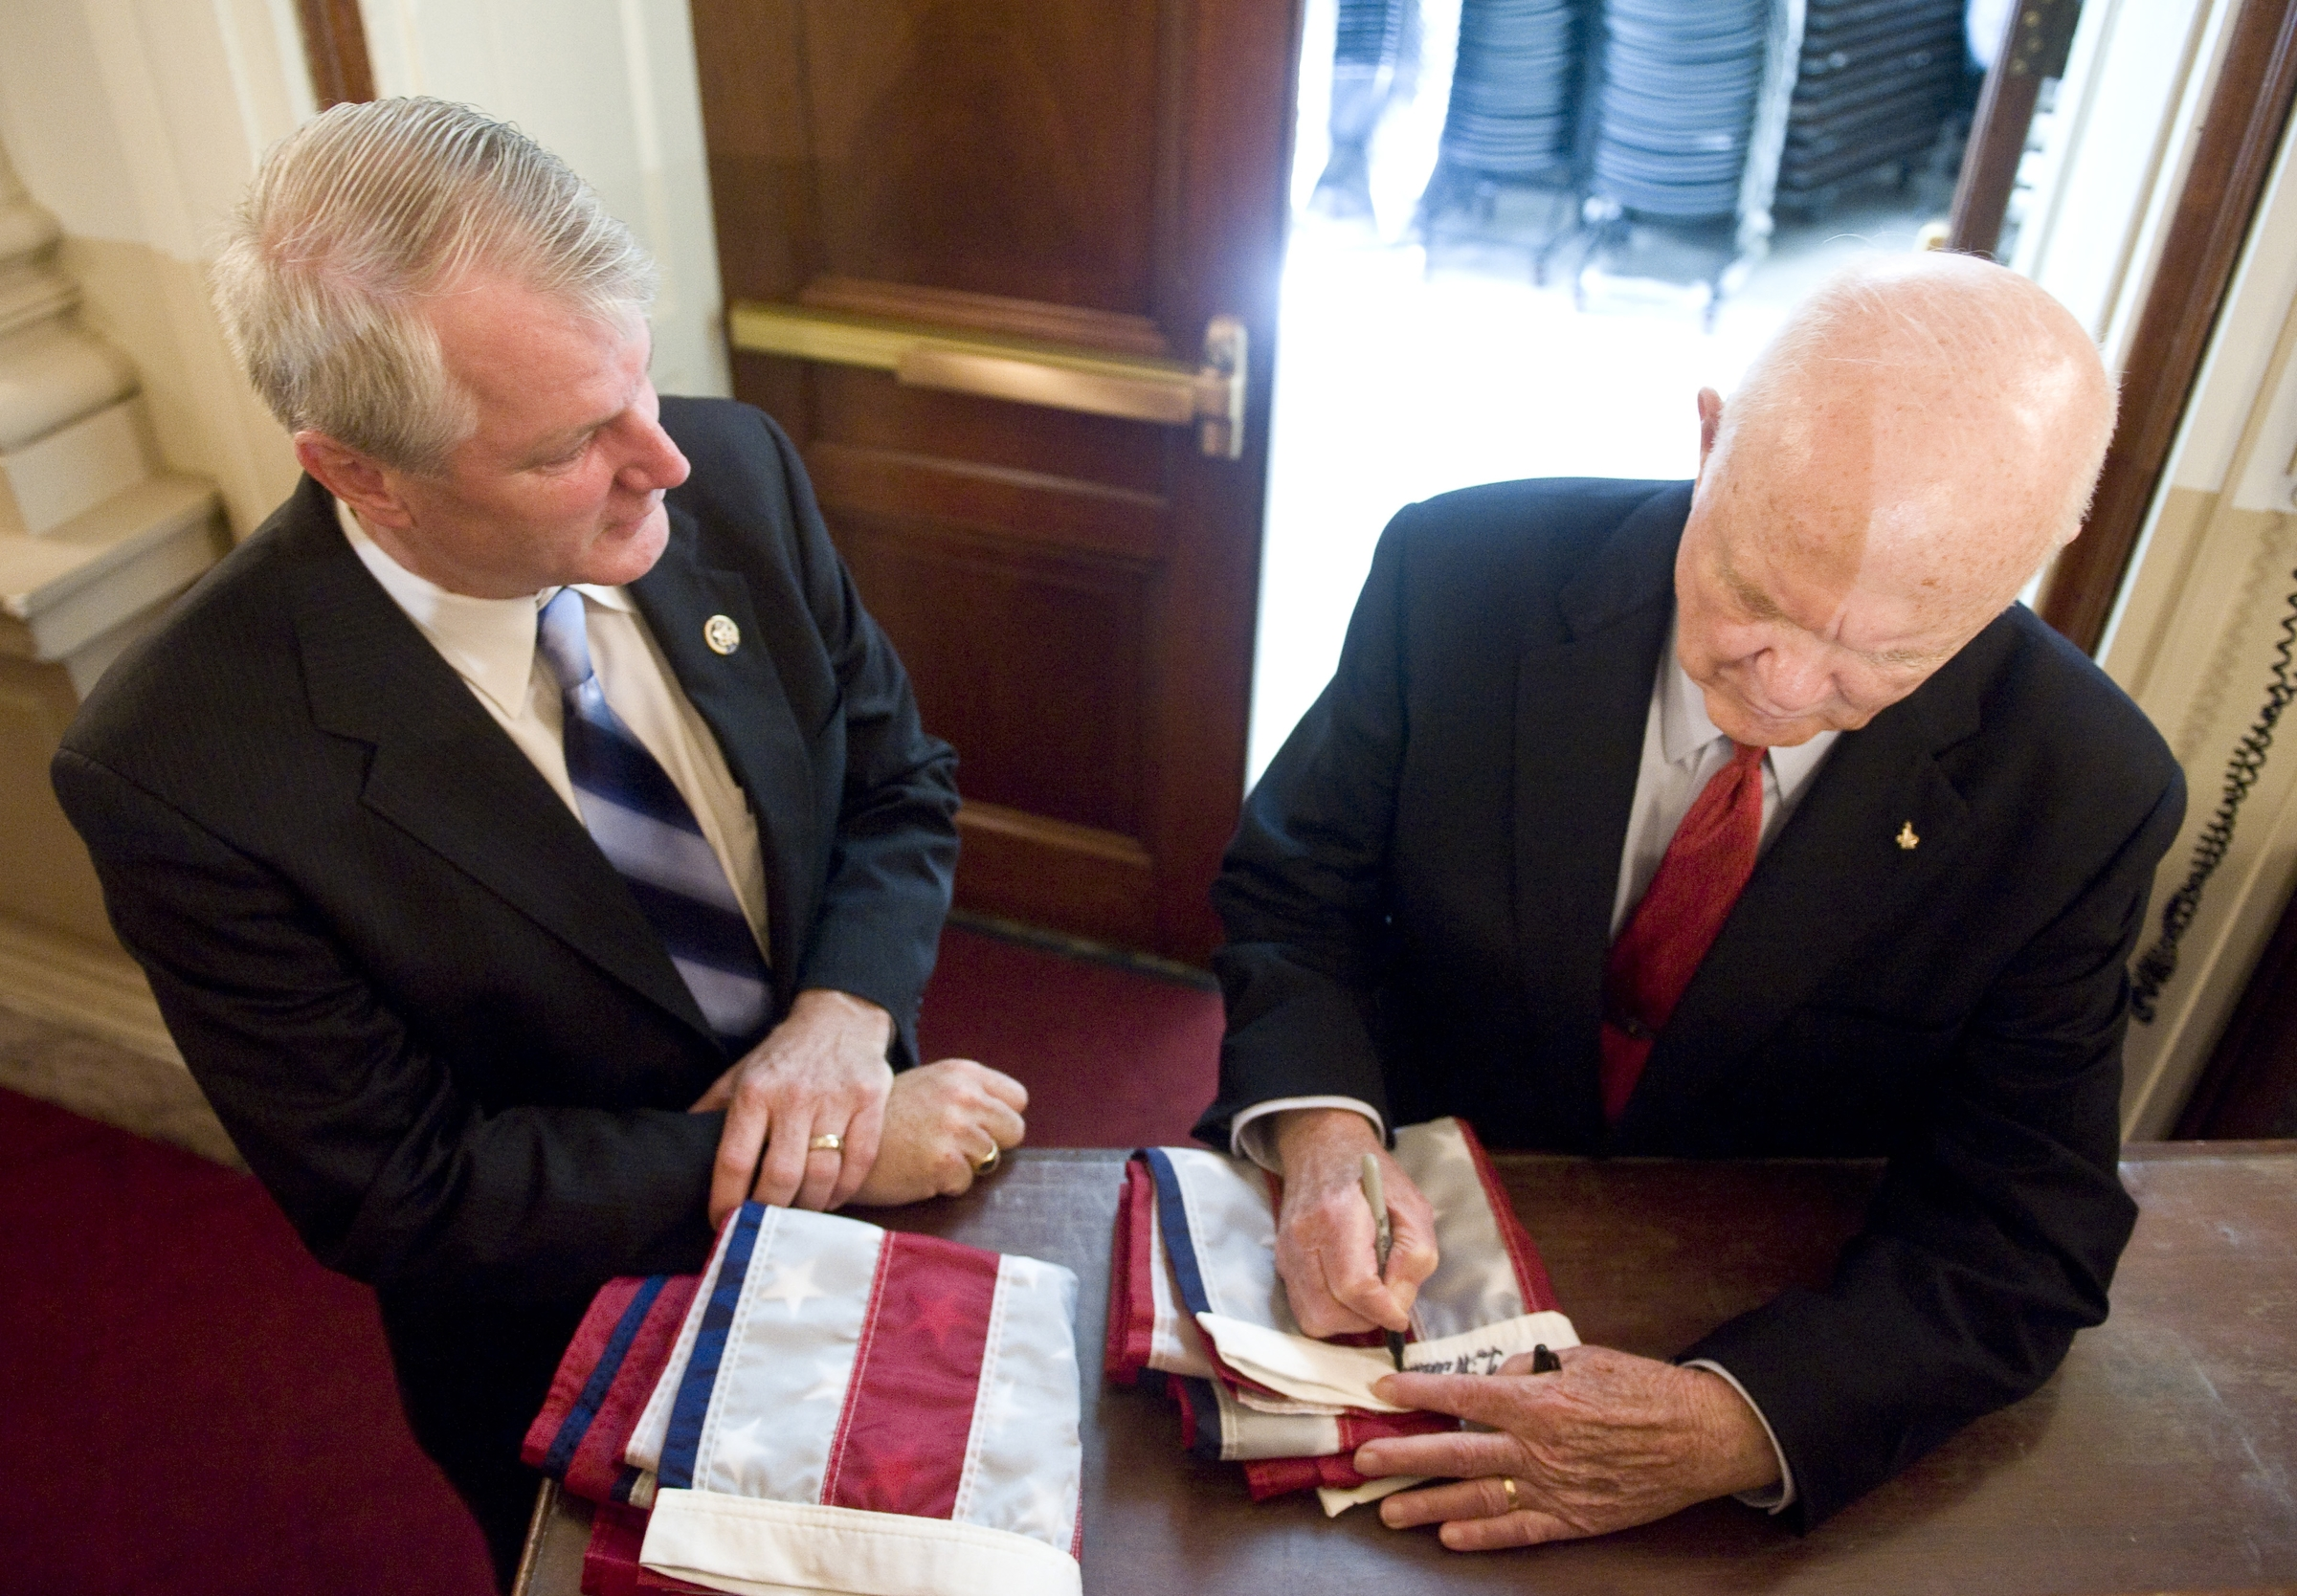 Rep. Brian Baird, D-Wash., left, watches as astronaut and former Sen. John Glenn, D-Ohio, signs two flags for Baird's twin sons during the tribute event to the Apollo 11 astronauts celebrating the 40th anniversary of the first moon landing on Tuesday, July 21, 2009. (CQ Roll Call File Photo)